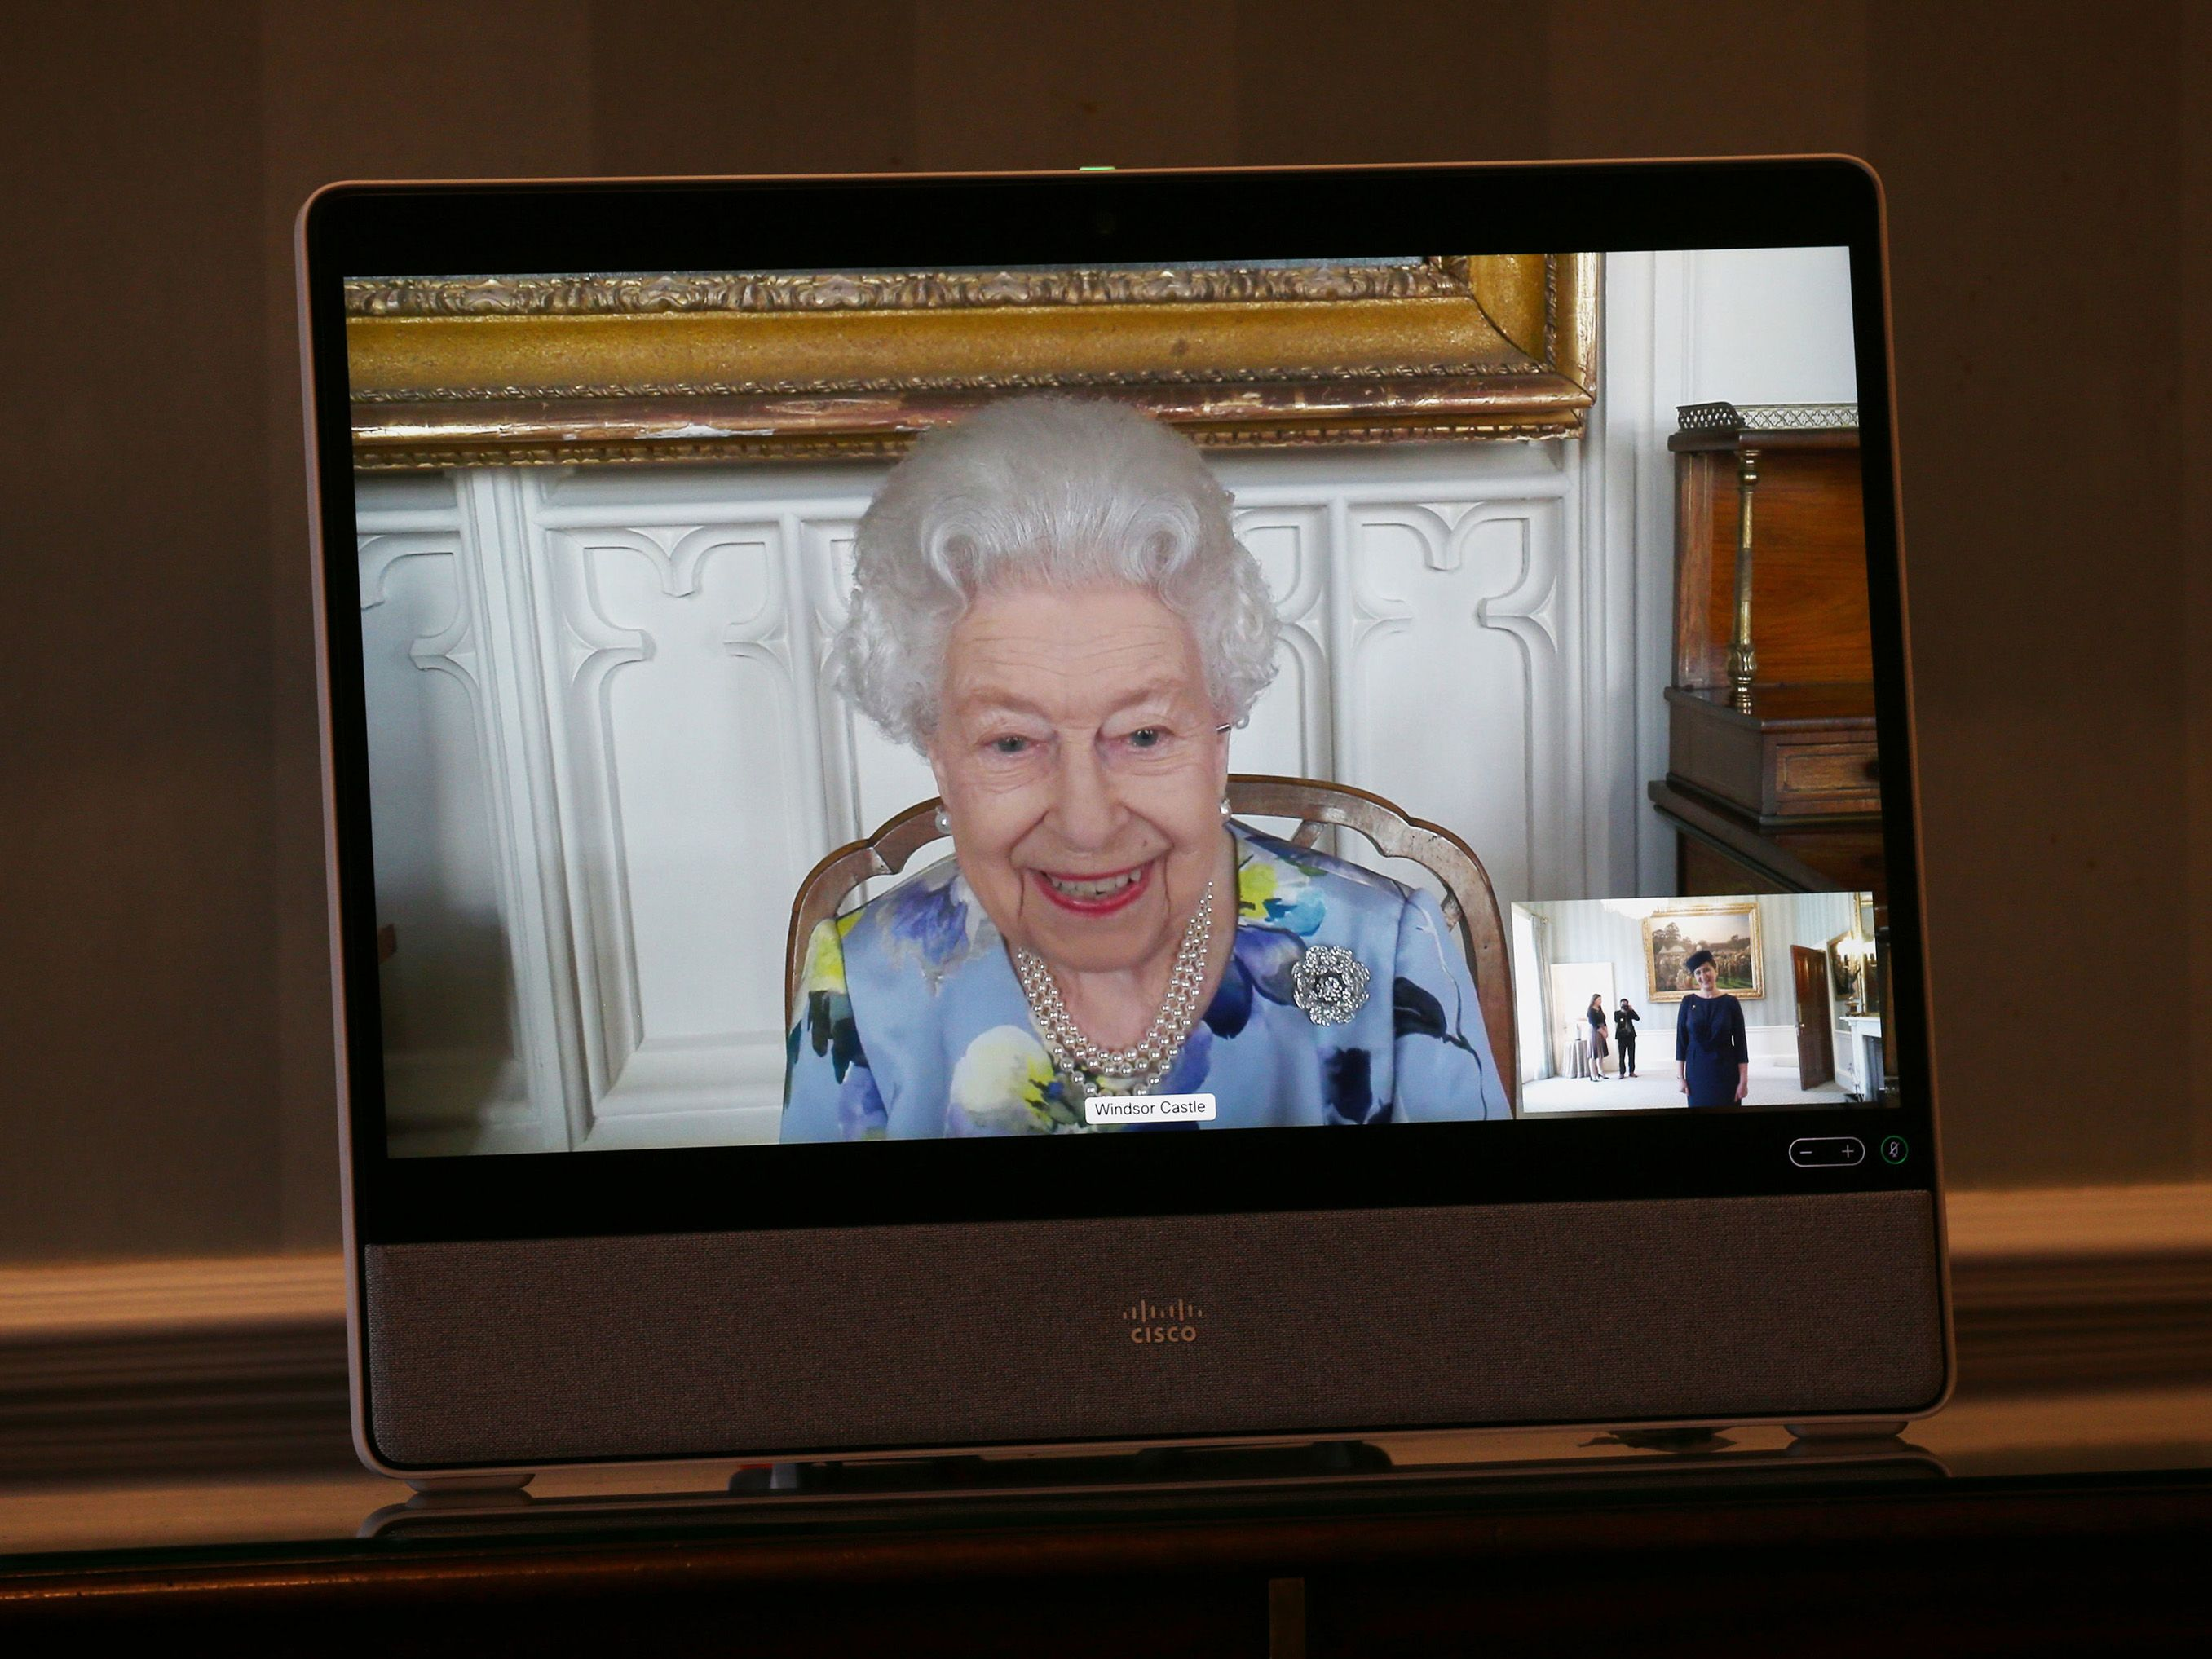 The Queen just made her first public appearance since Prince Philip's funeral